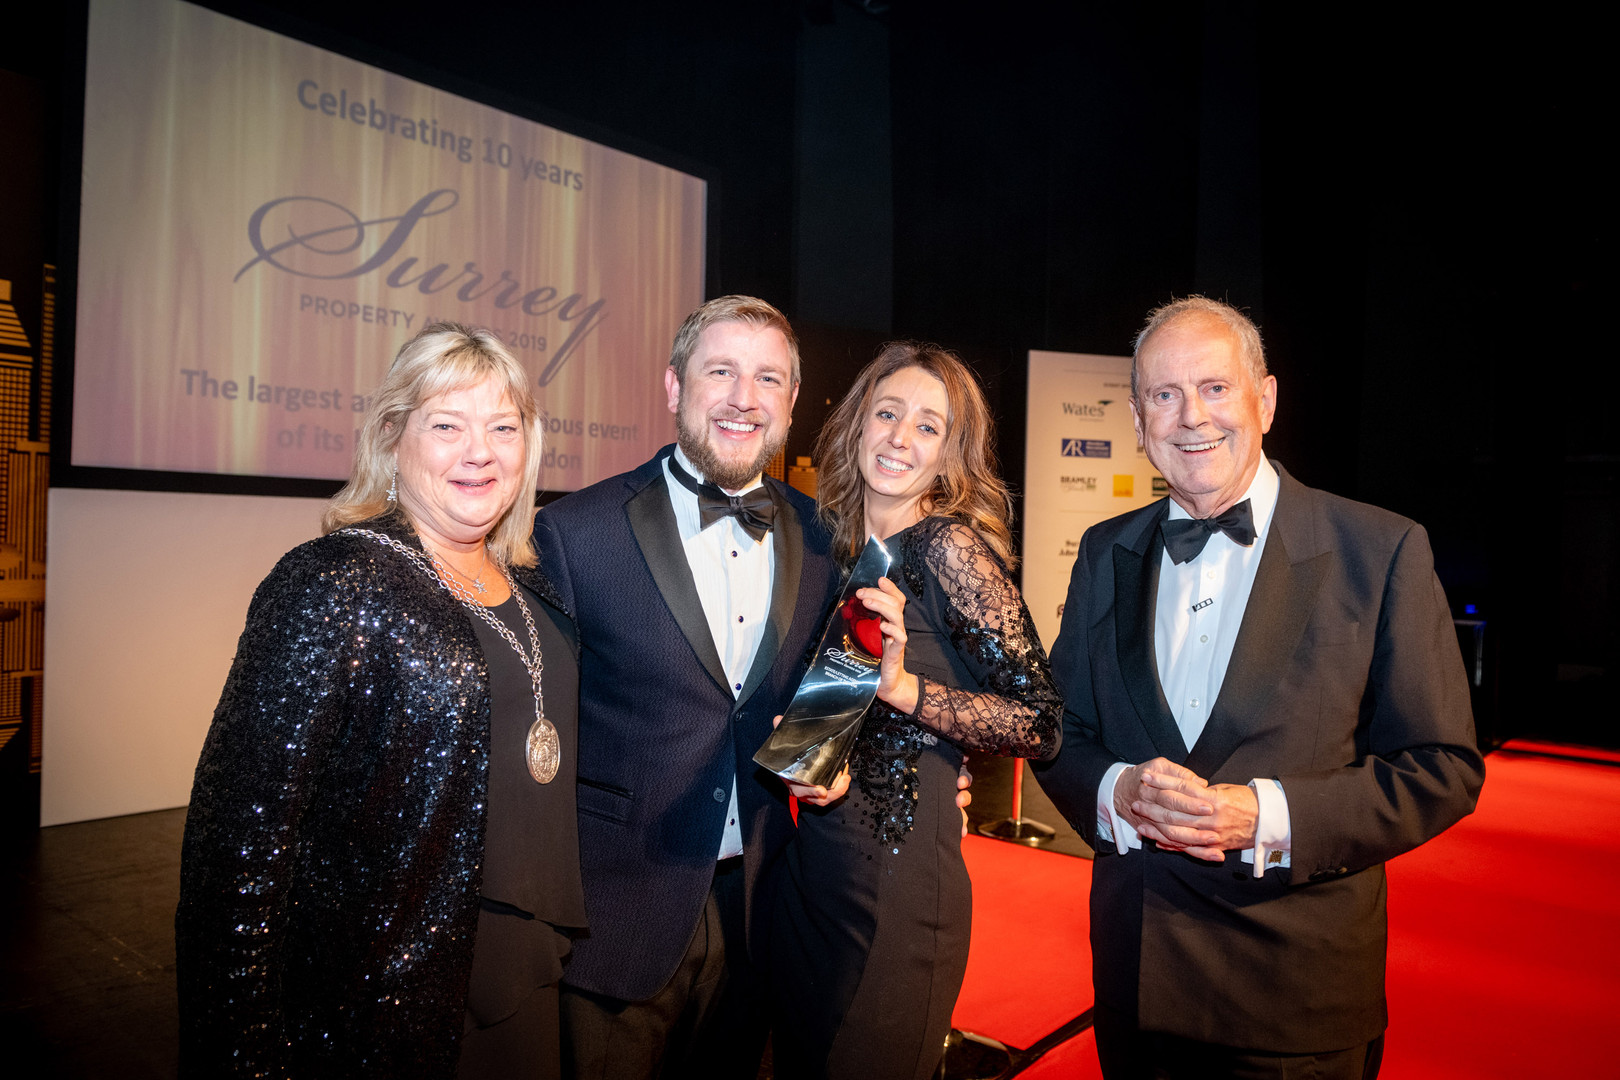 SurreyPropertyAwards_Nov2019_379.jpg